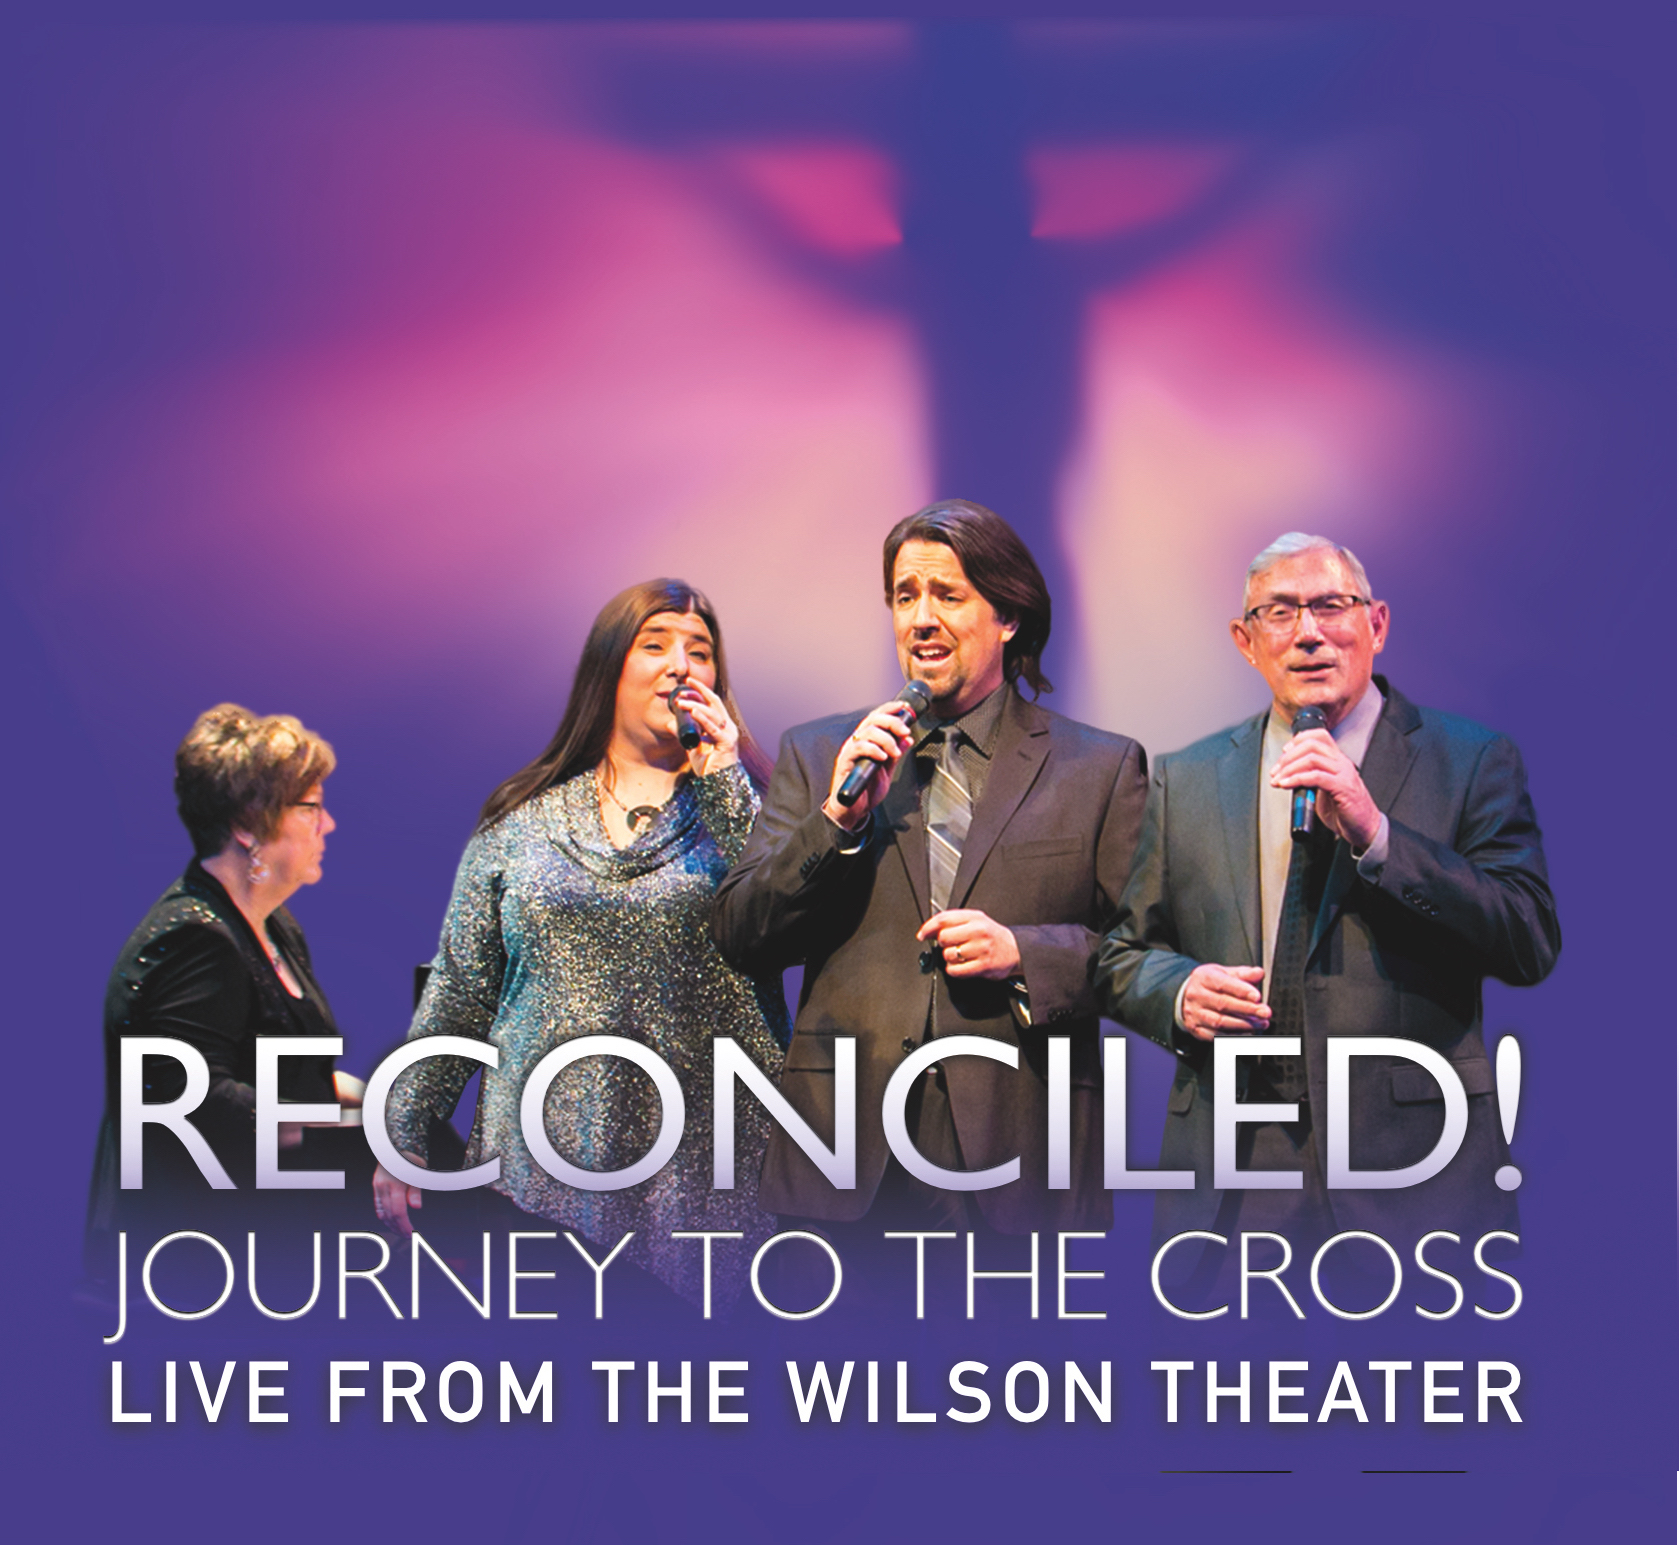 RECONCILED!  - JOURNEY TO THE CORSS - LIVE FROM THE WILSON THEATER